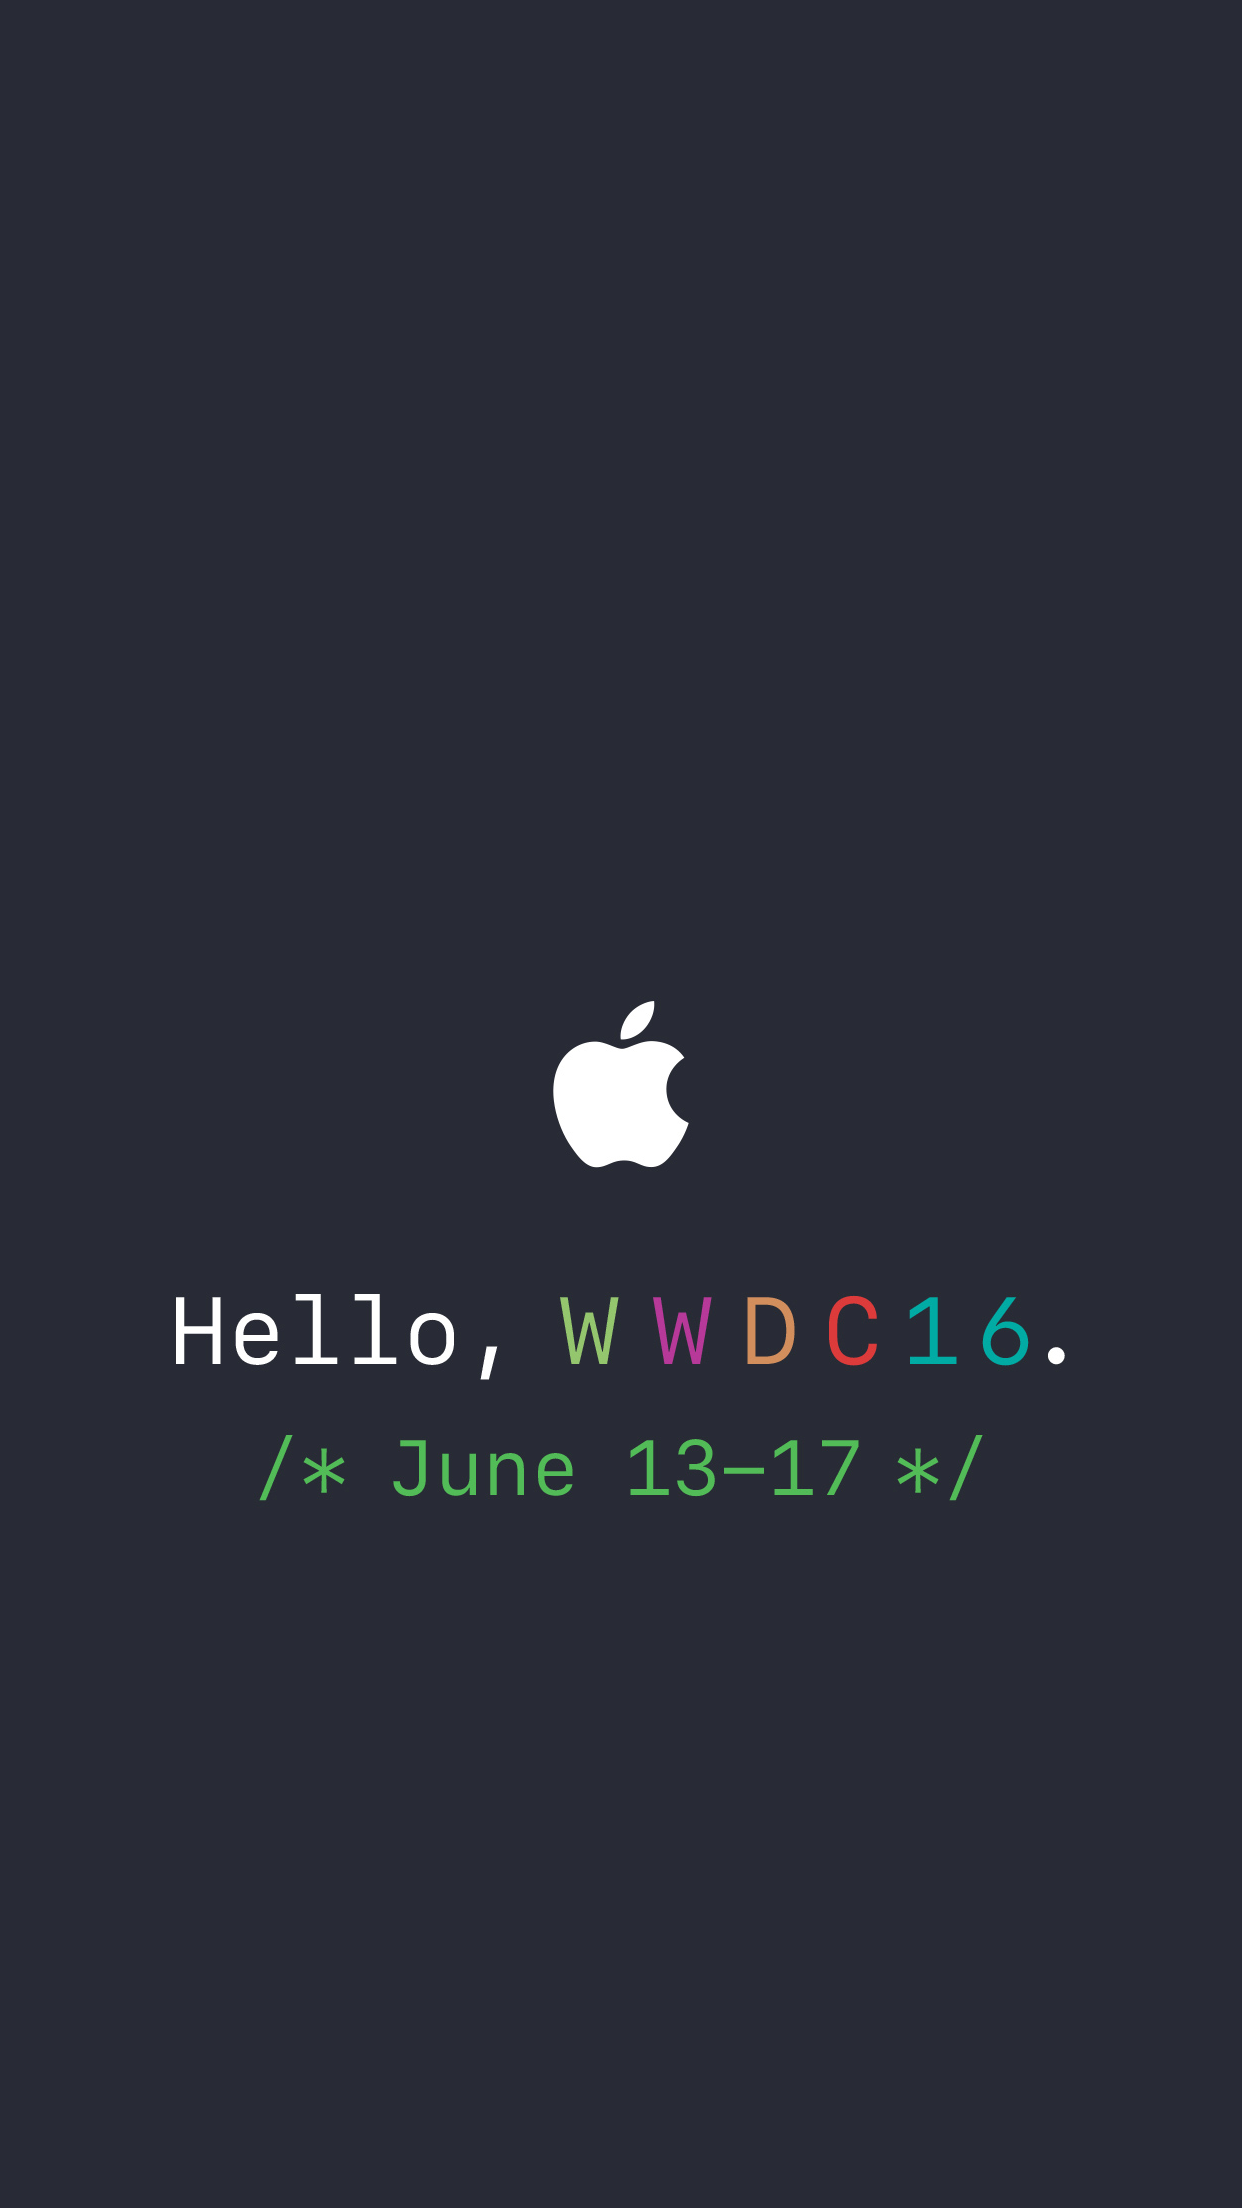 AR72014 WWDC 2016 wallpaper 2